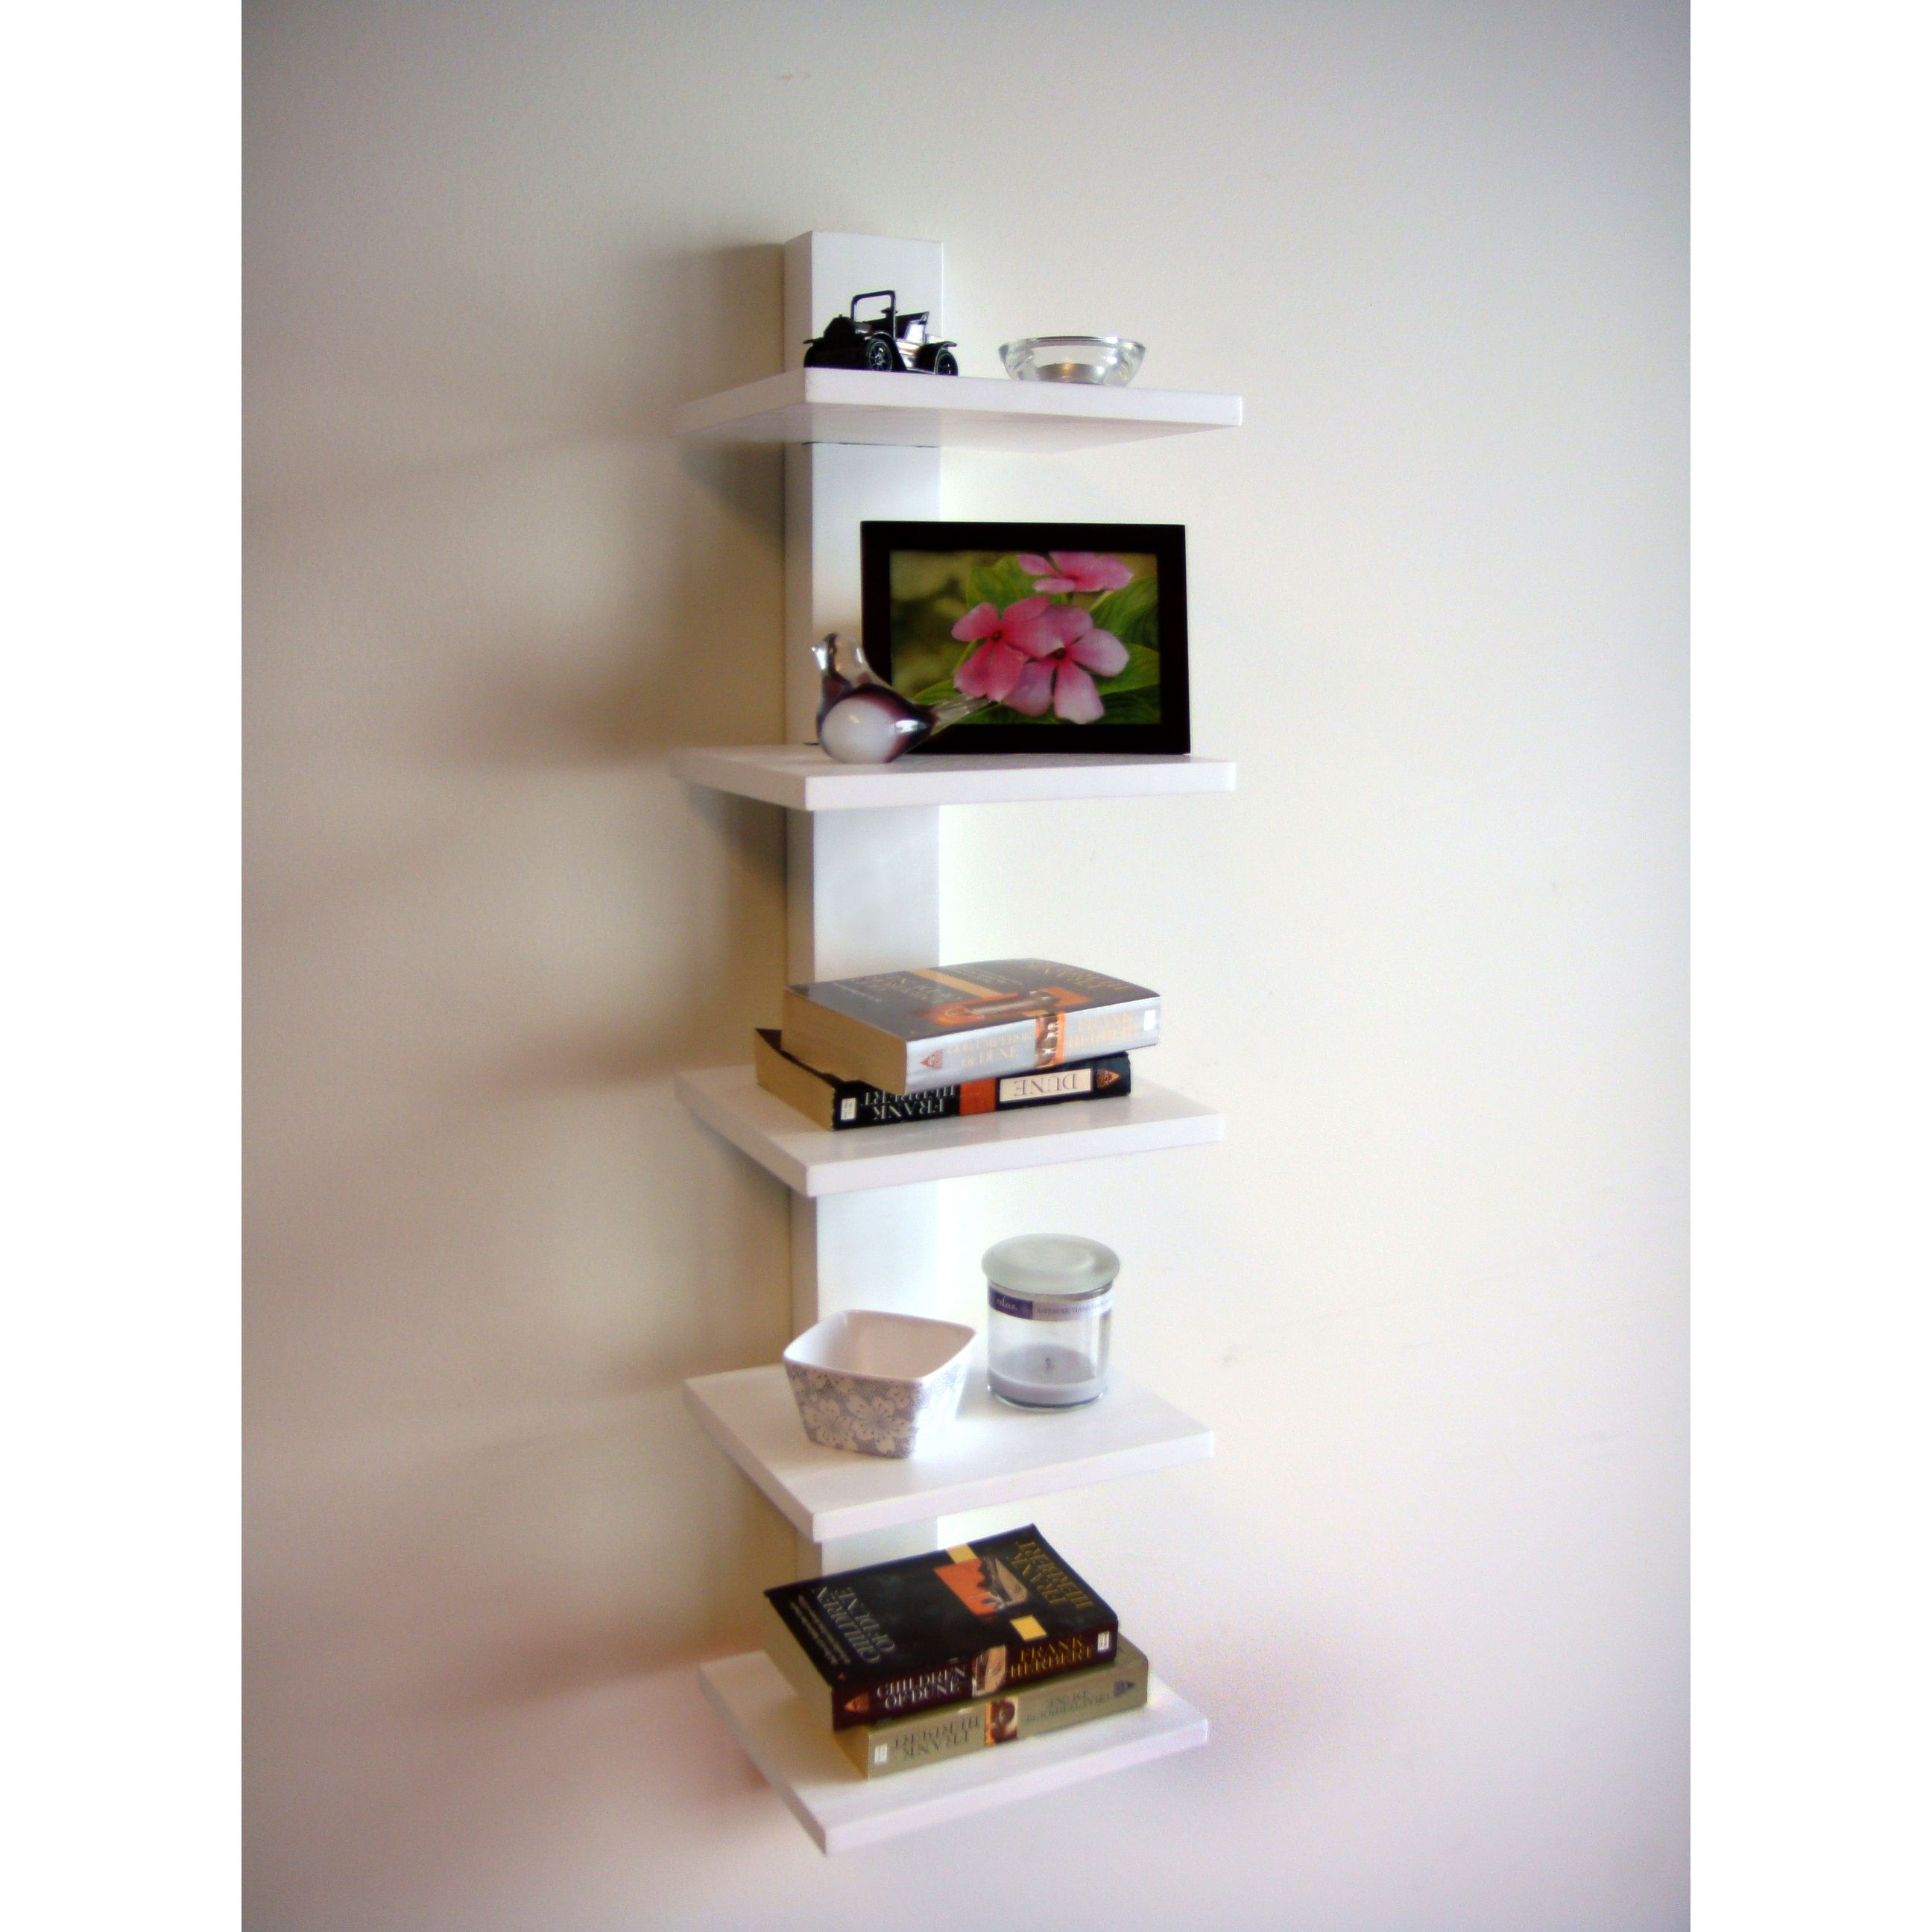 Spine Wall White Book Shelves By Proman Wall Mounted